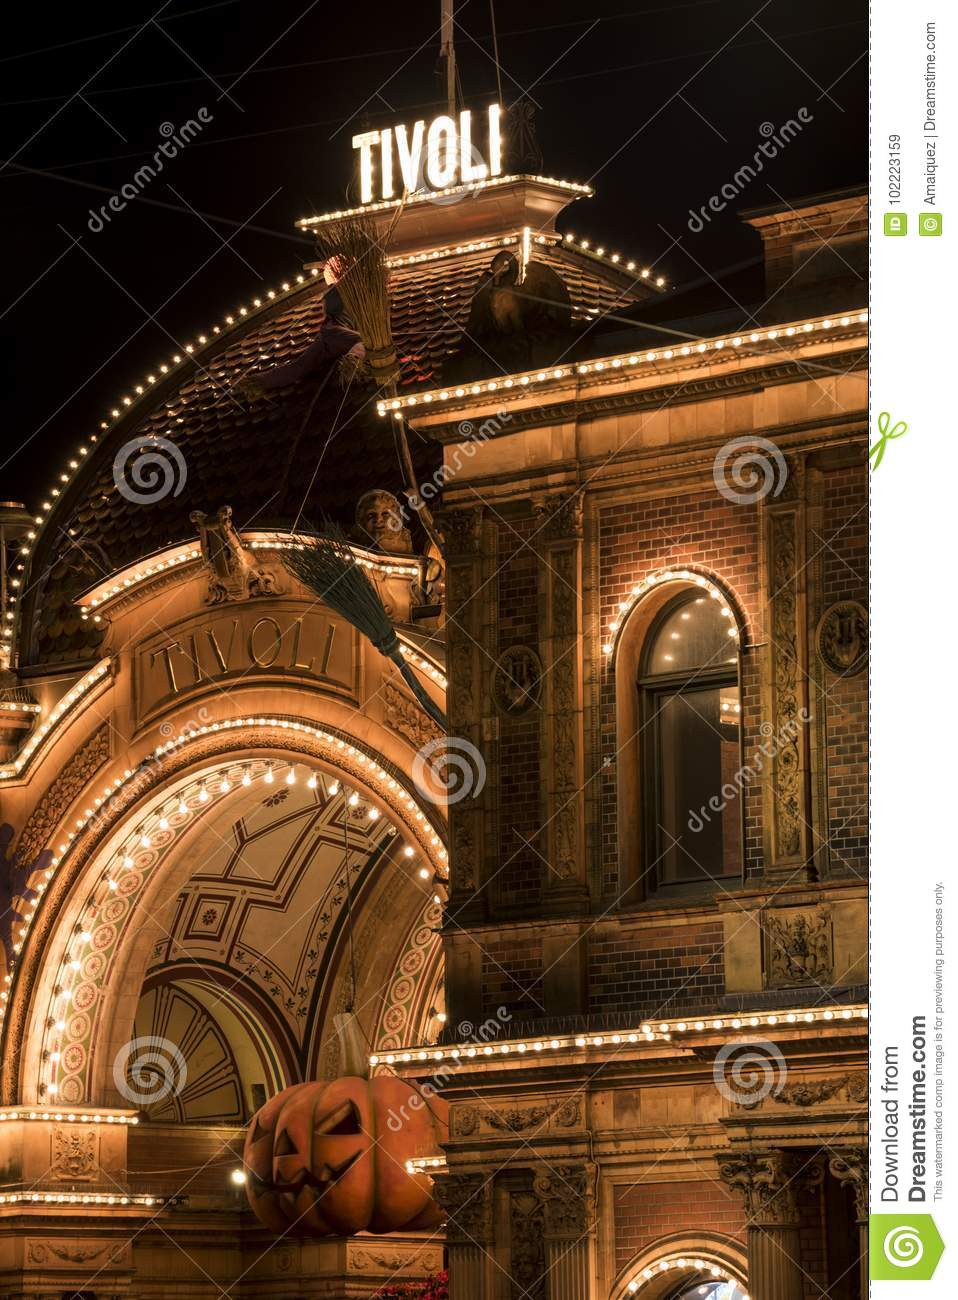 Tivoli Gardens Editorial Stock Image Image Of Attractions 102223159